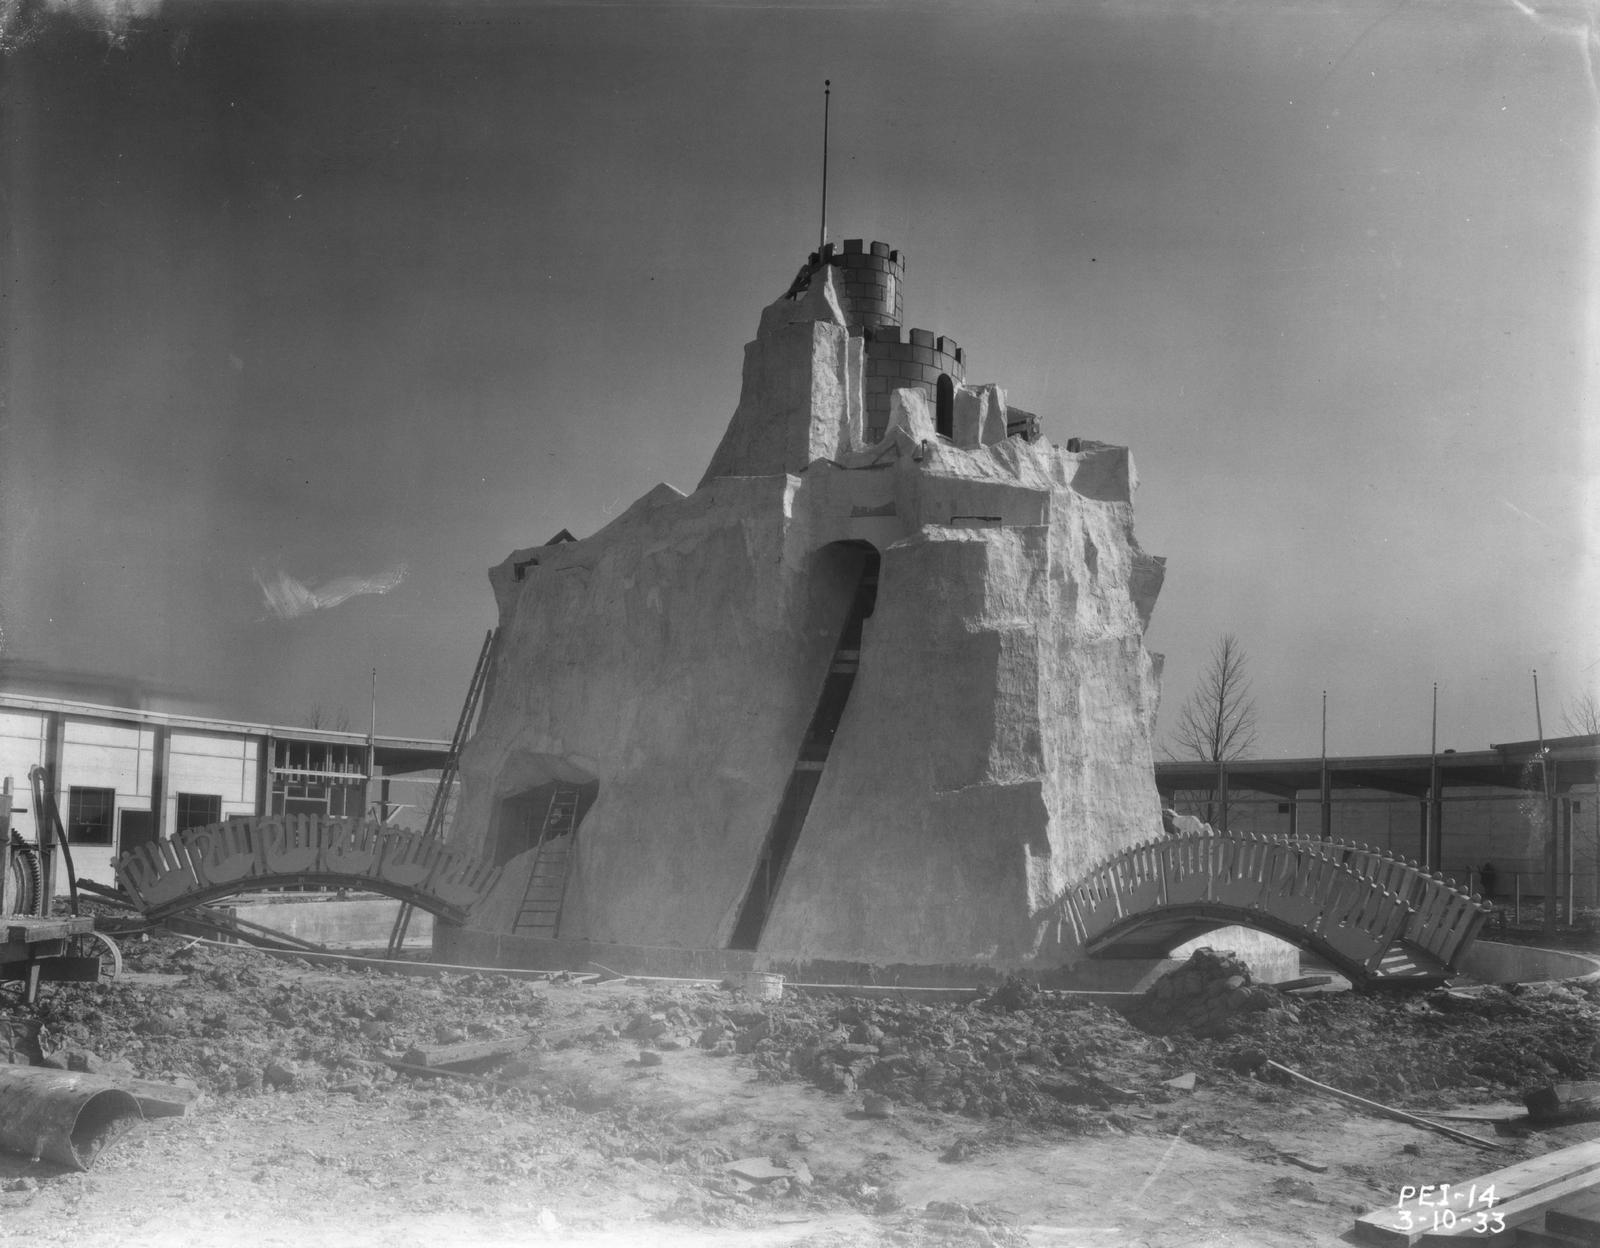 [Exterior view of Magic Mountain, part of the Enchanted Island exhibit at A Century of Progress. The photo was taken in March of 1933, a few months before the grand opening of the Fair.]